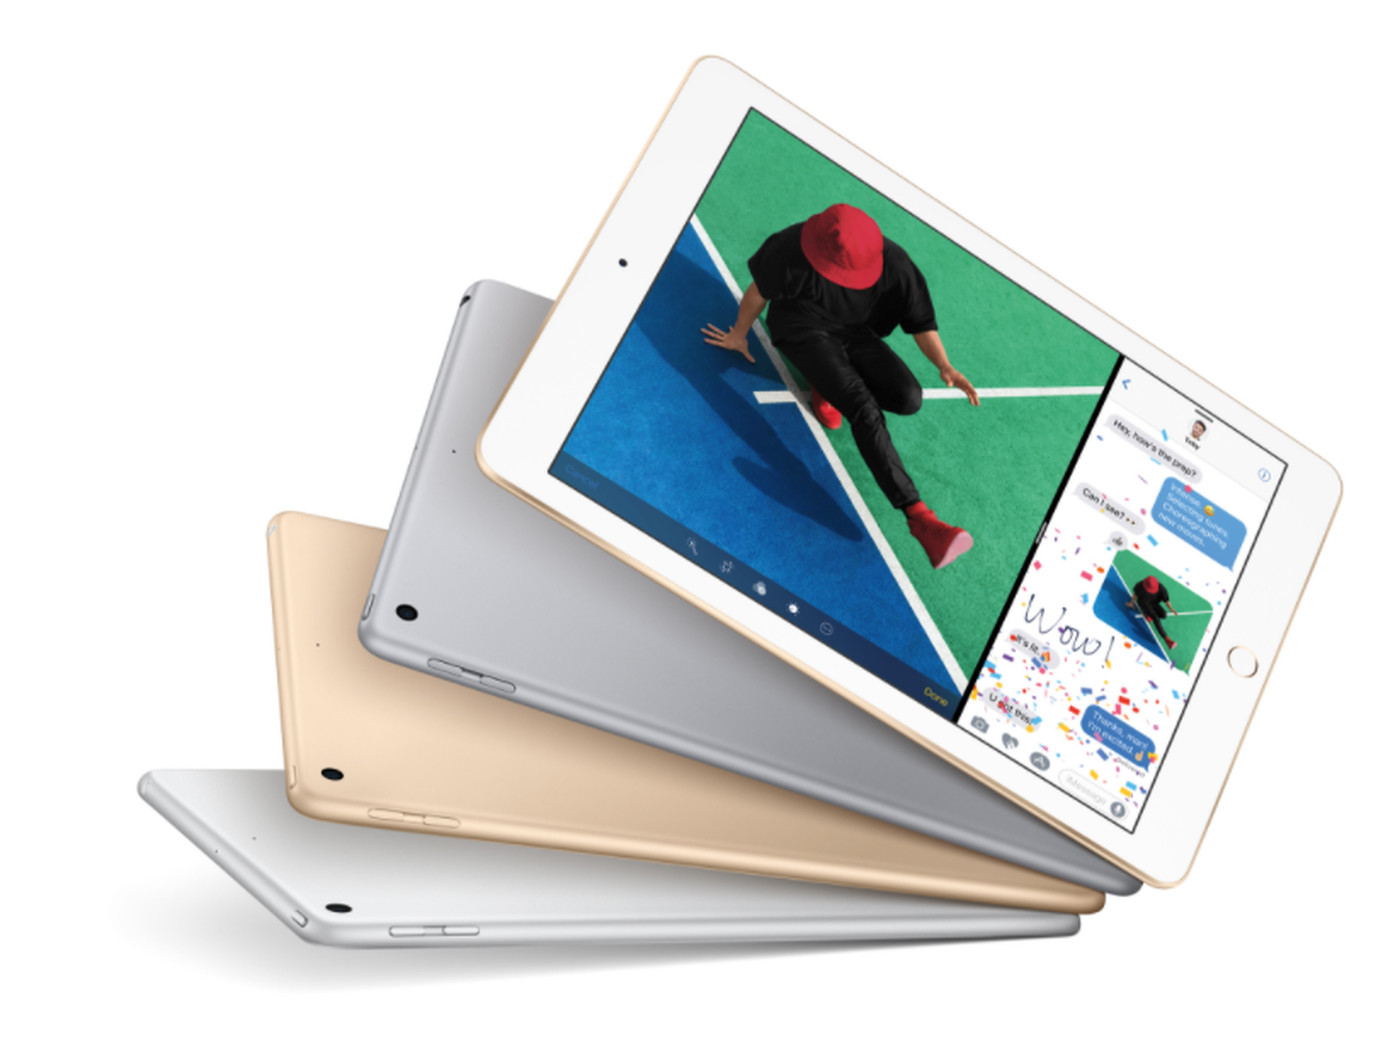 Apple replaces iPad Air 2 with cheaper 9 7-inch iPad - The Verge